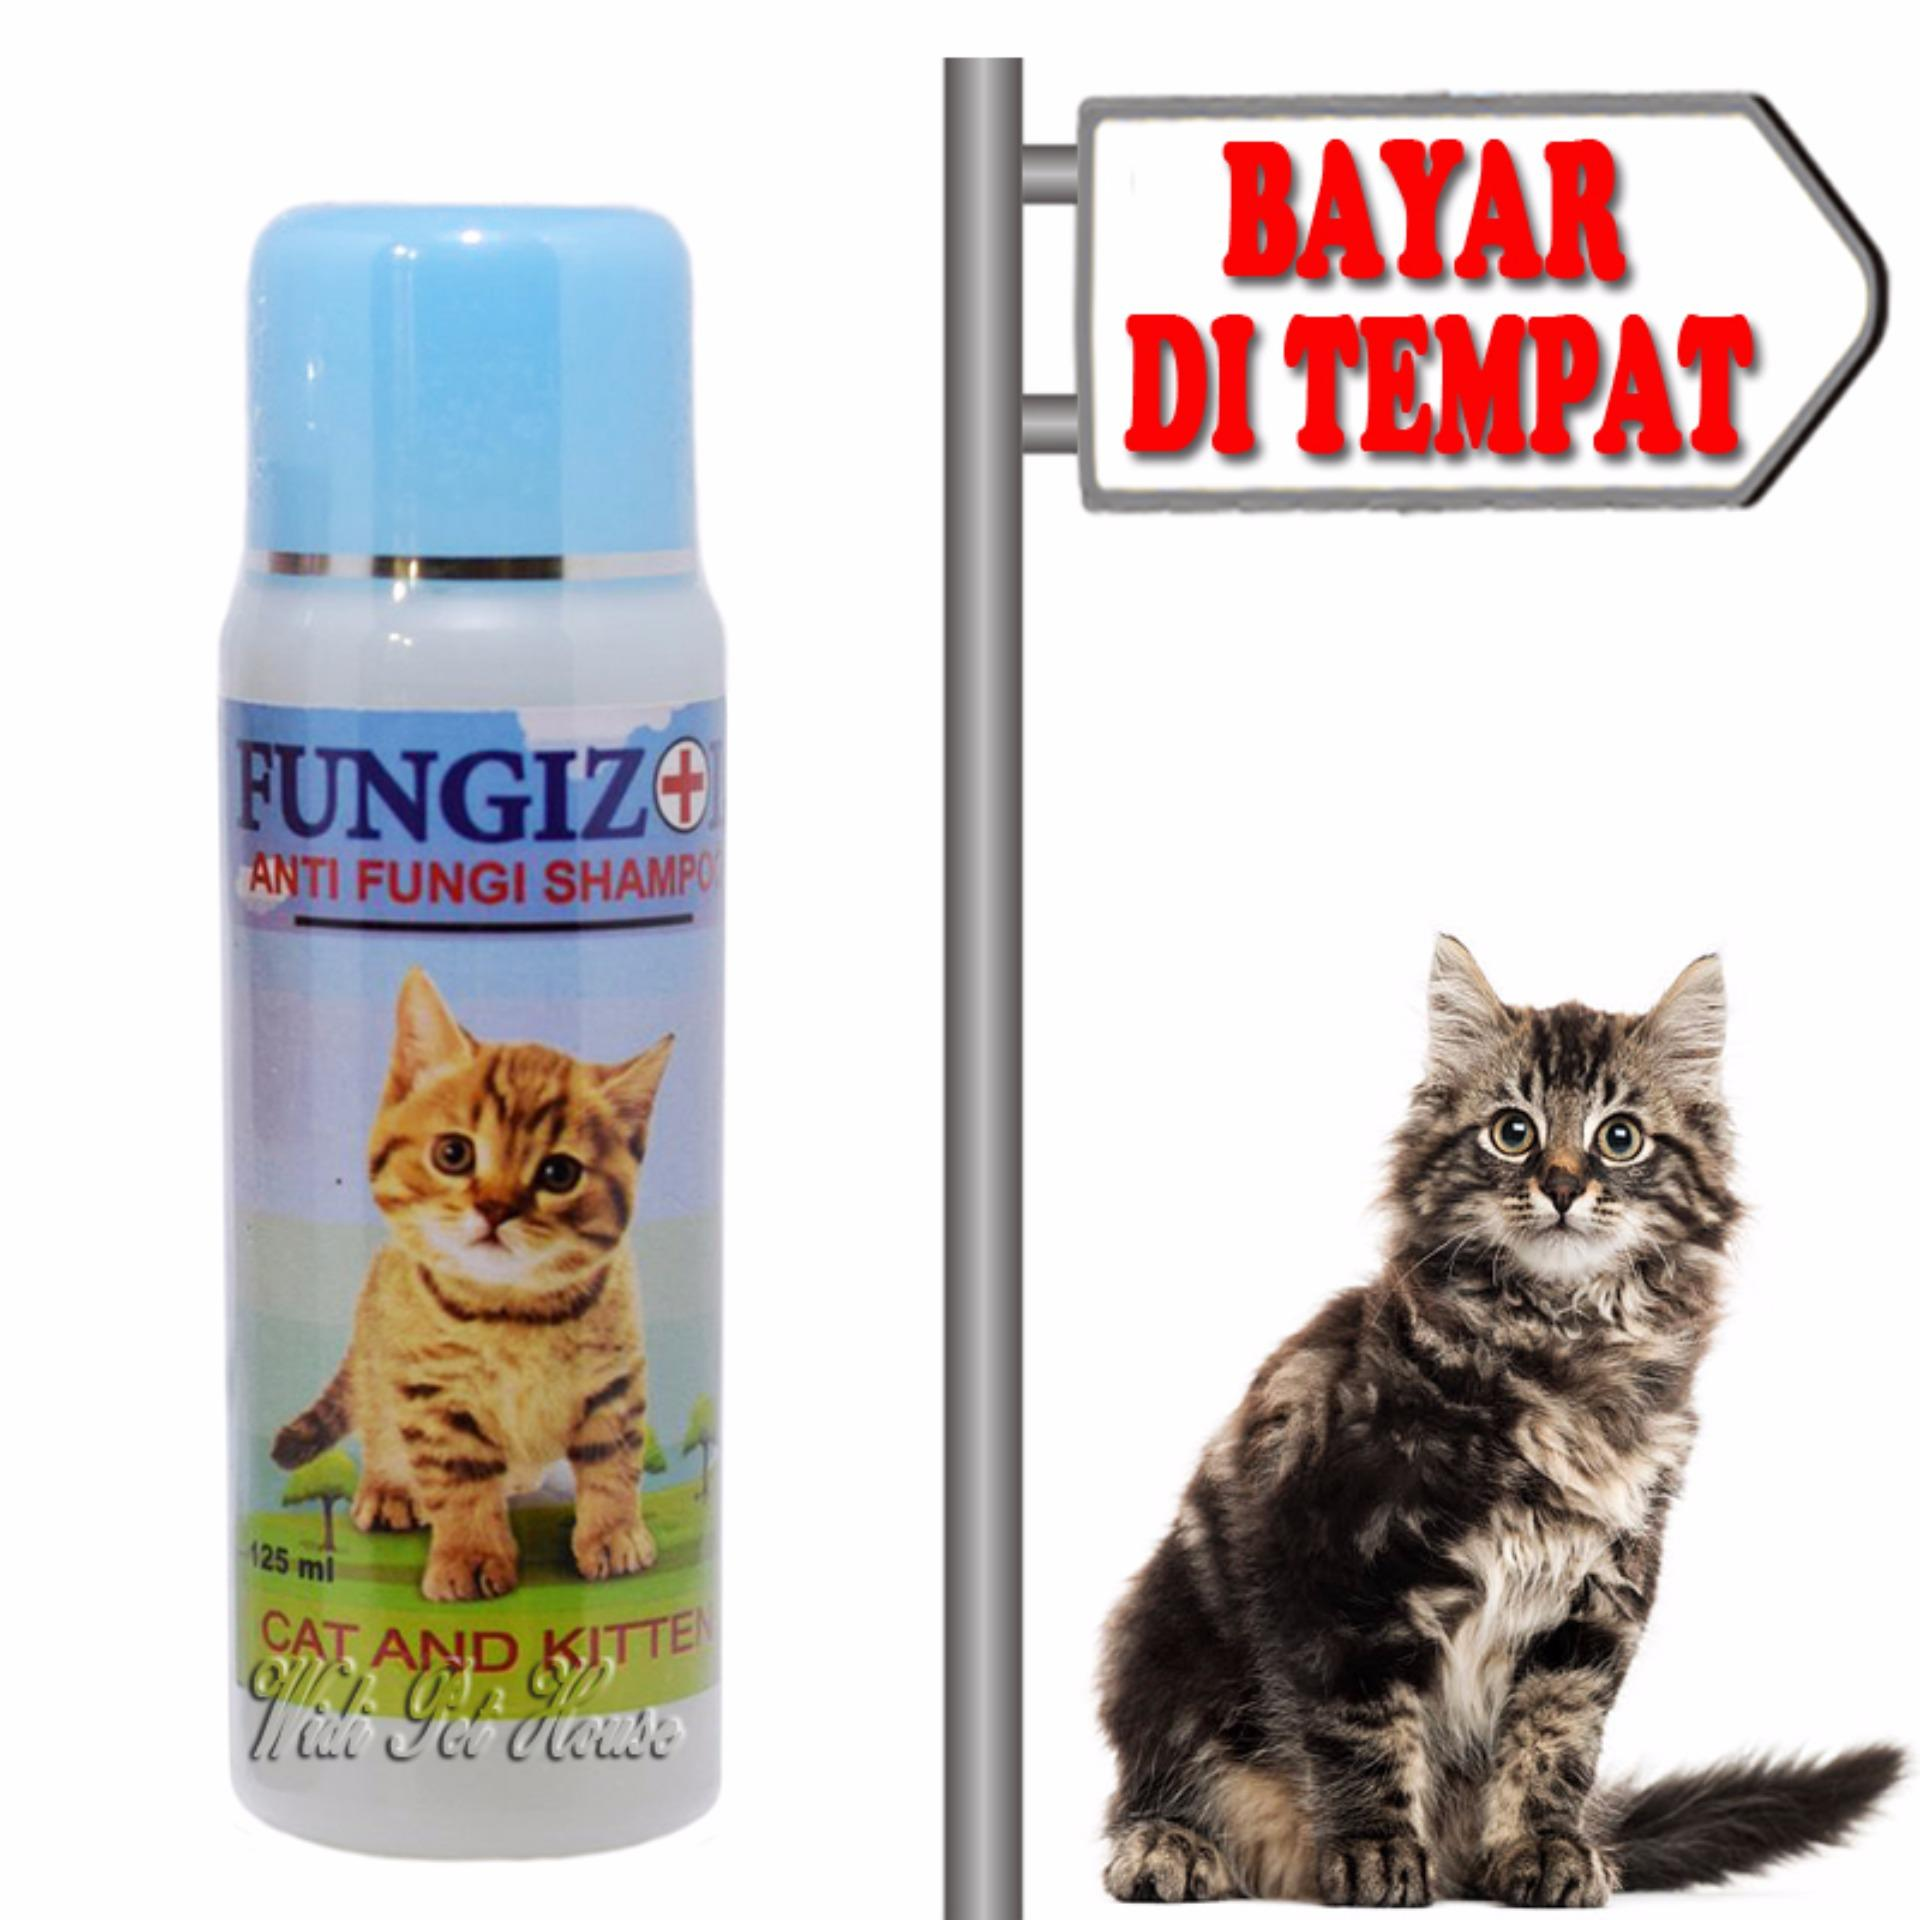 Shampo Kucing Anti Jamur Sampo Kitten Scabies Fungizol By Widi Pet House.